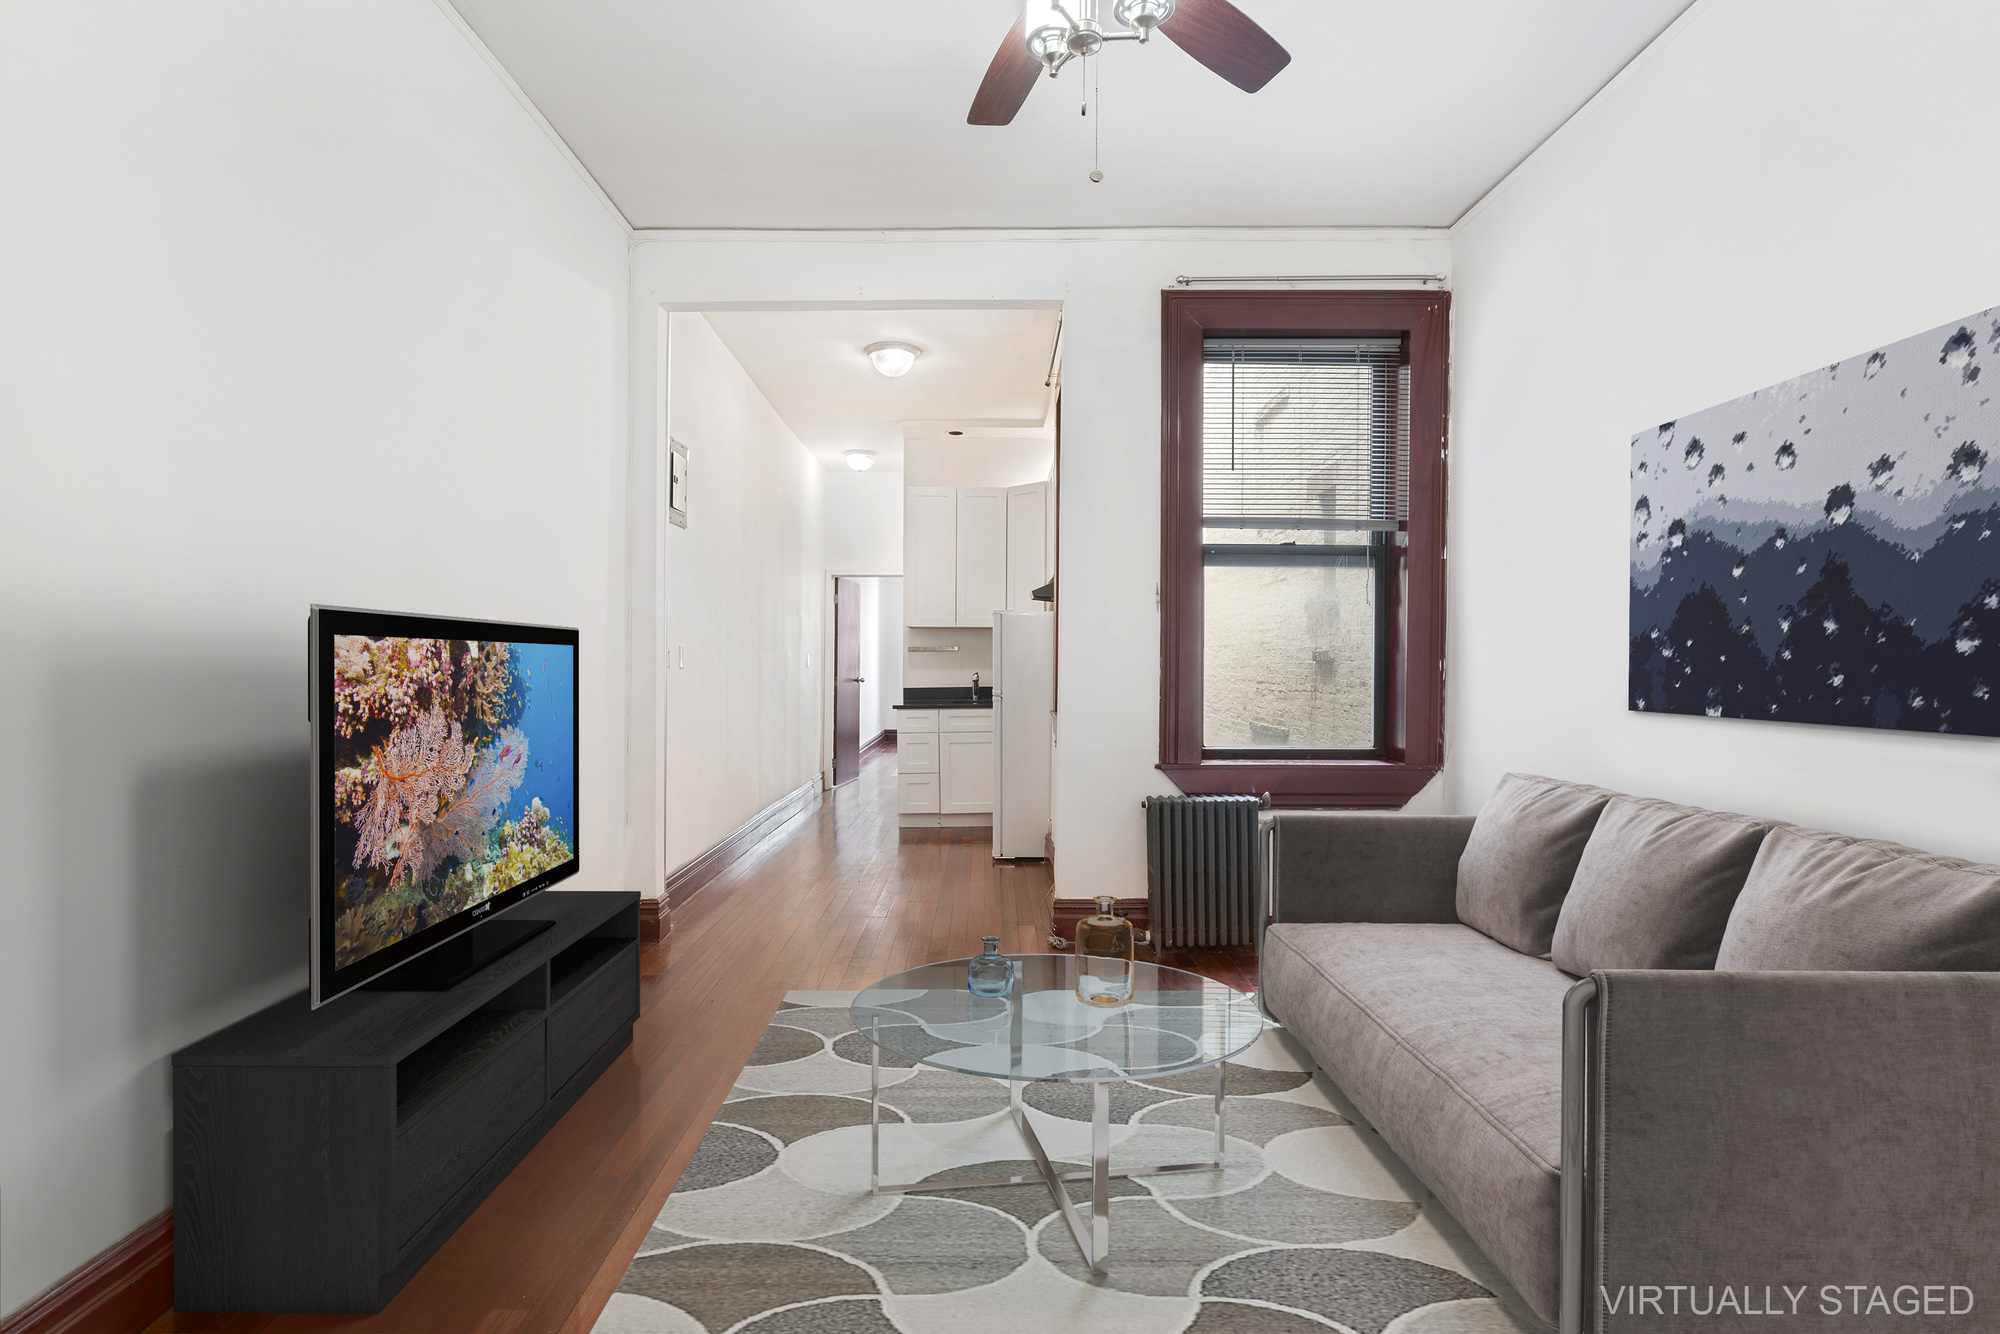 primary photo for 235 West 15th Street 3-D, New York, NY 10011, US